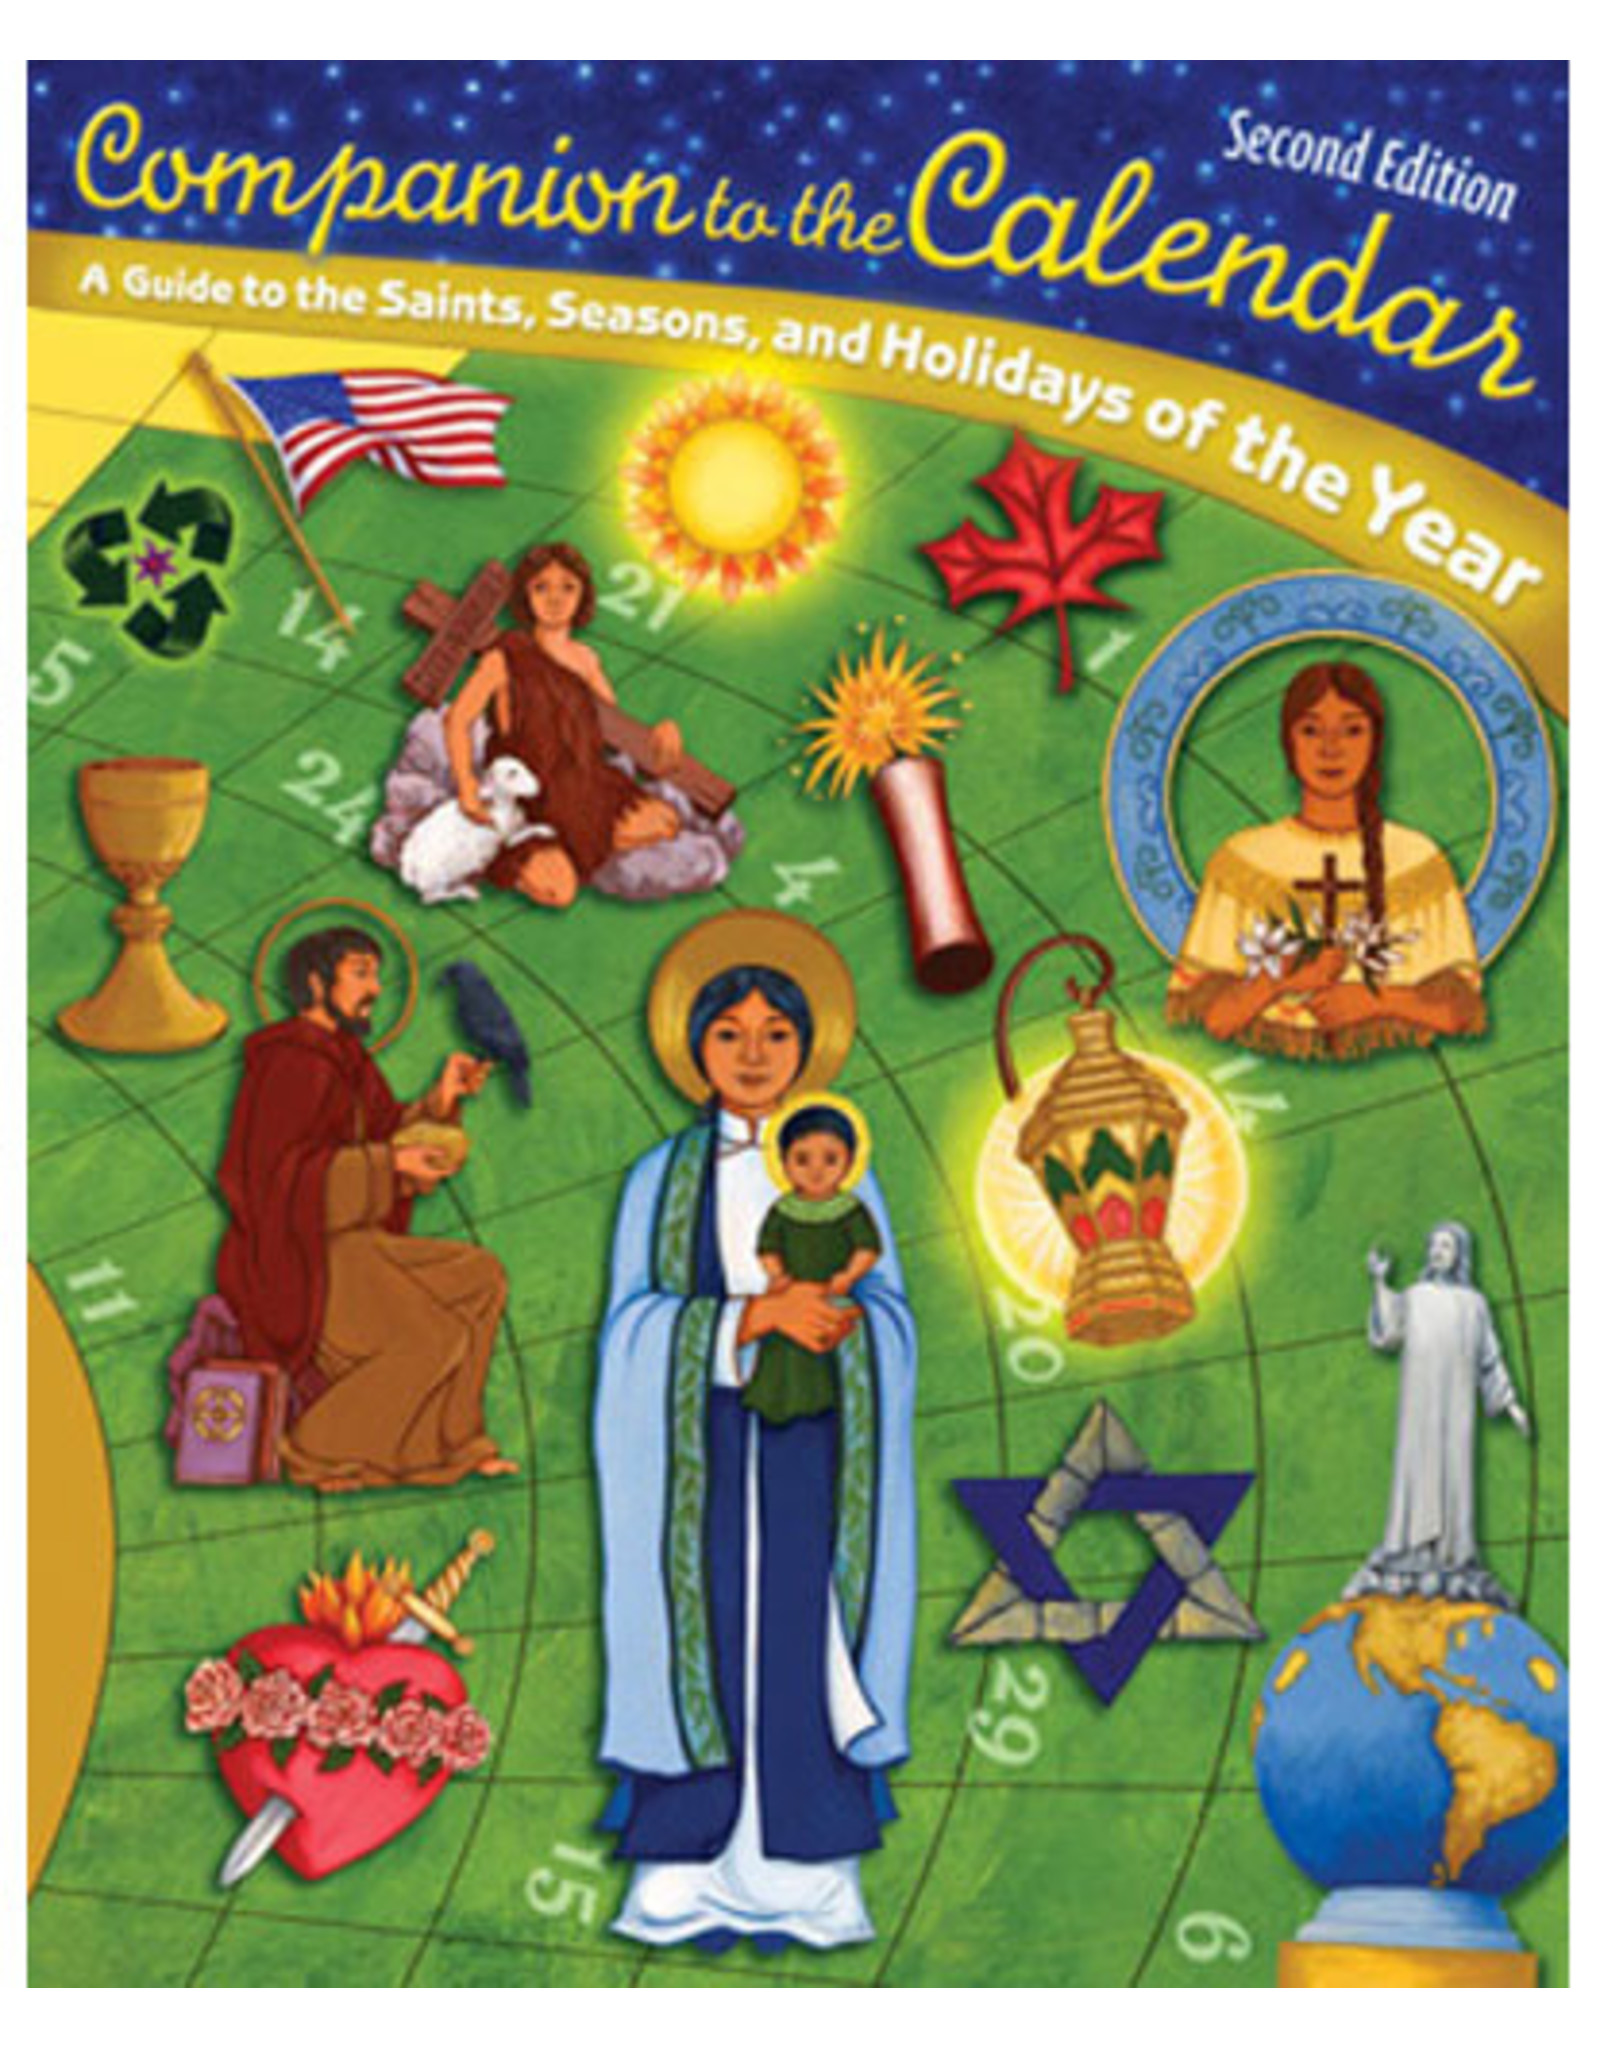 Companion to the Calendar: Guide to the Saints, Seasons, & Holidays of the Year